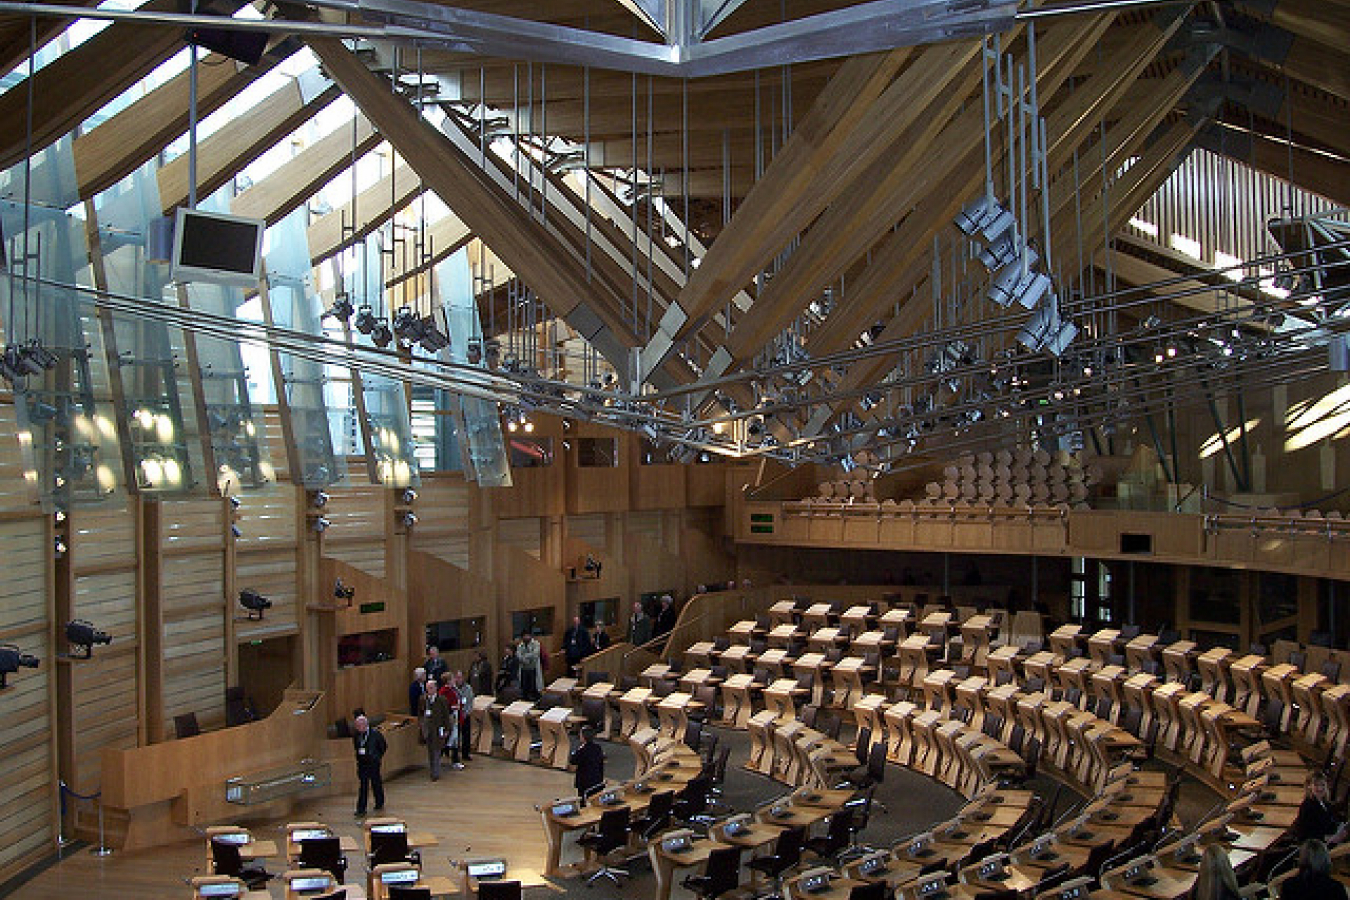 Scottish Parliament Chamber, Scotland, UK